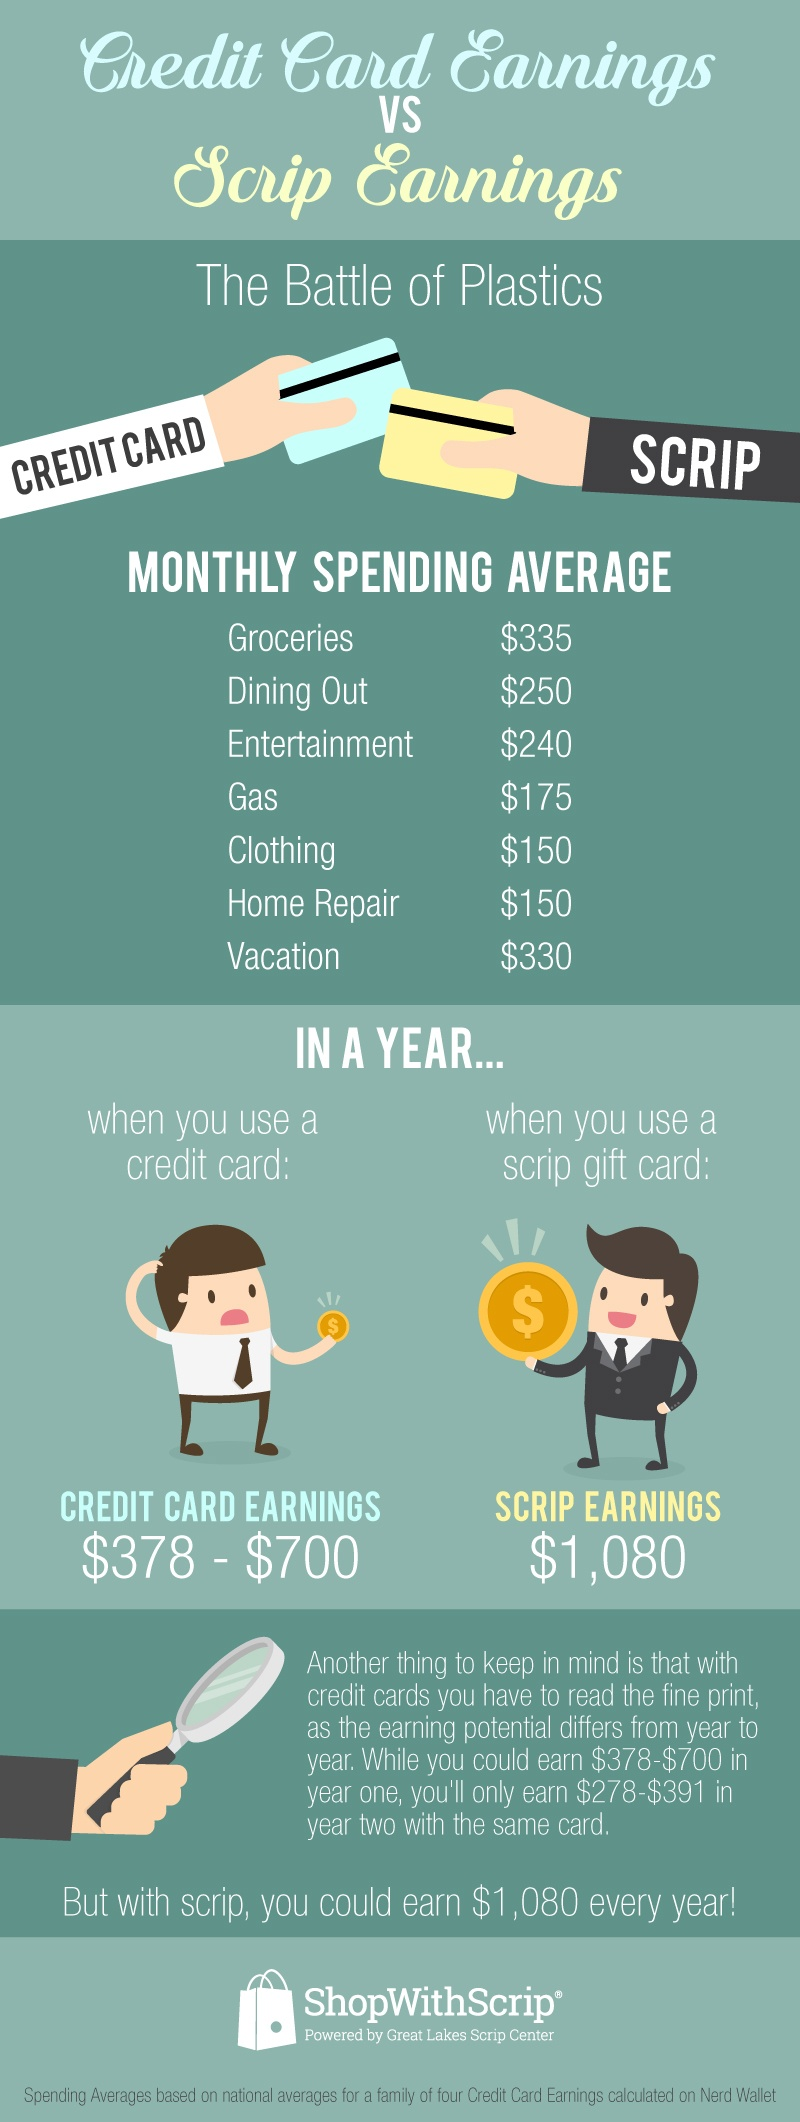 Credit_Card_vs_Scrip_Infographic